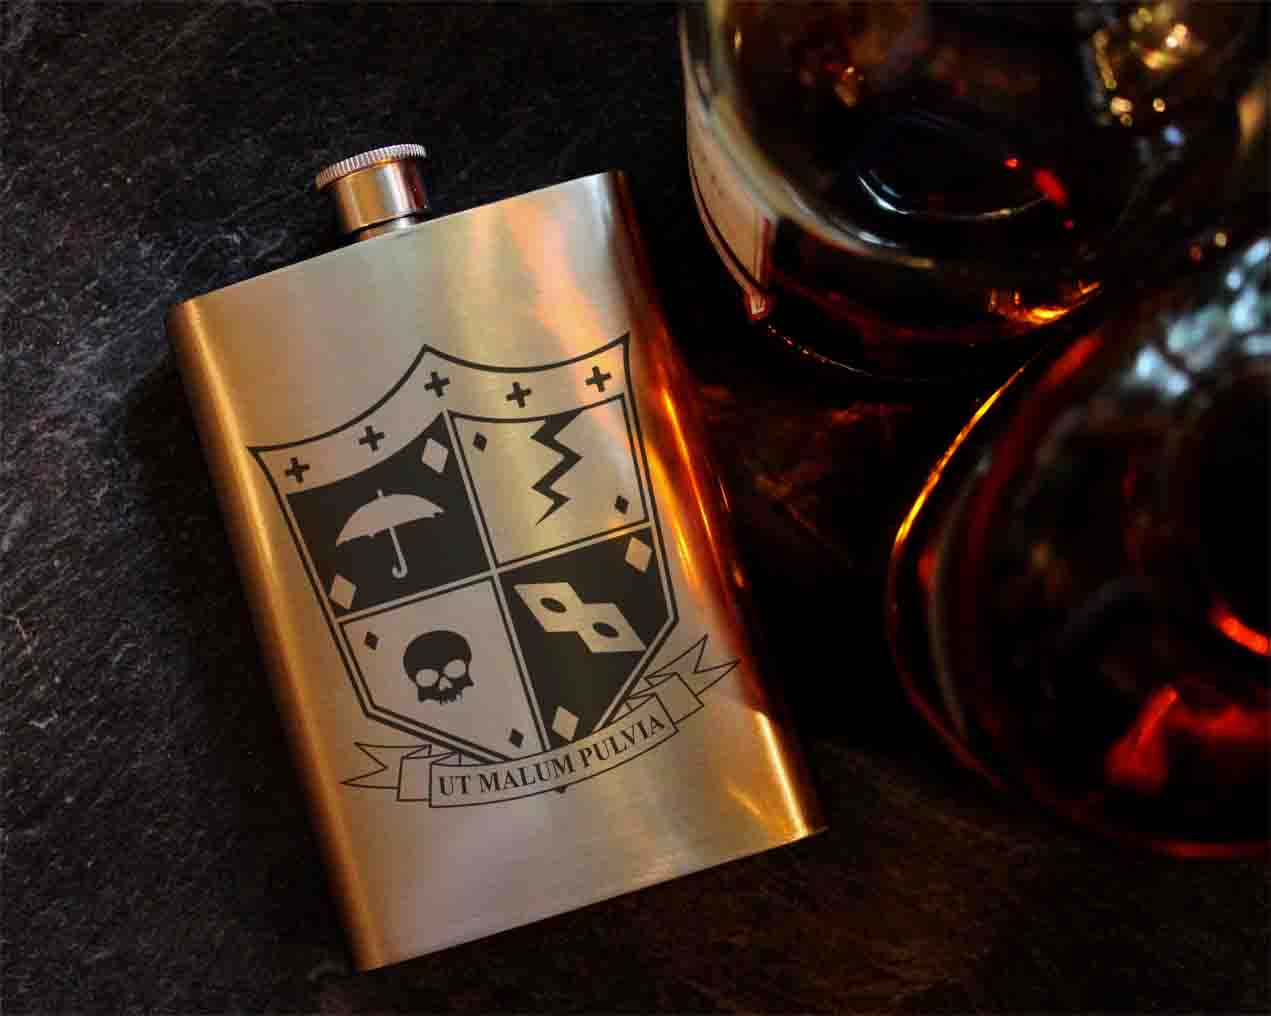 f8f7e4753 Umbrella Academy Crest 8oz Hip Flask, Drinking Flask – ByCandlelight27